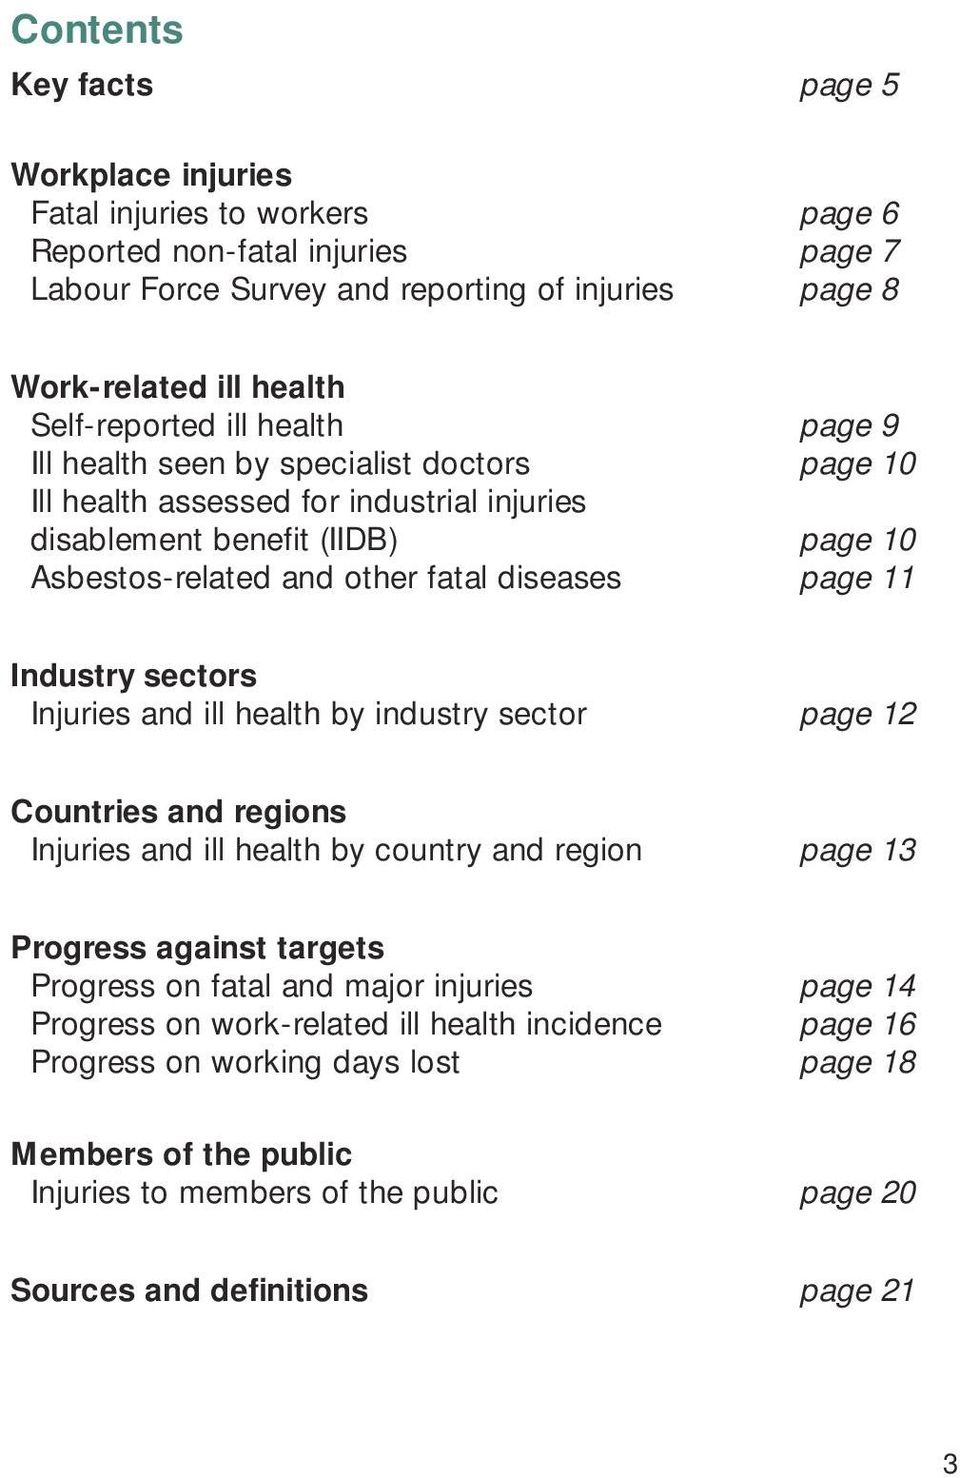 fatal diseases page 9 page 10 page 10 page 11 Industry sectors Injuries and ill health by industry sector page 12 Countries and regions Injuries and ill health by country and region page 13 Progress